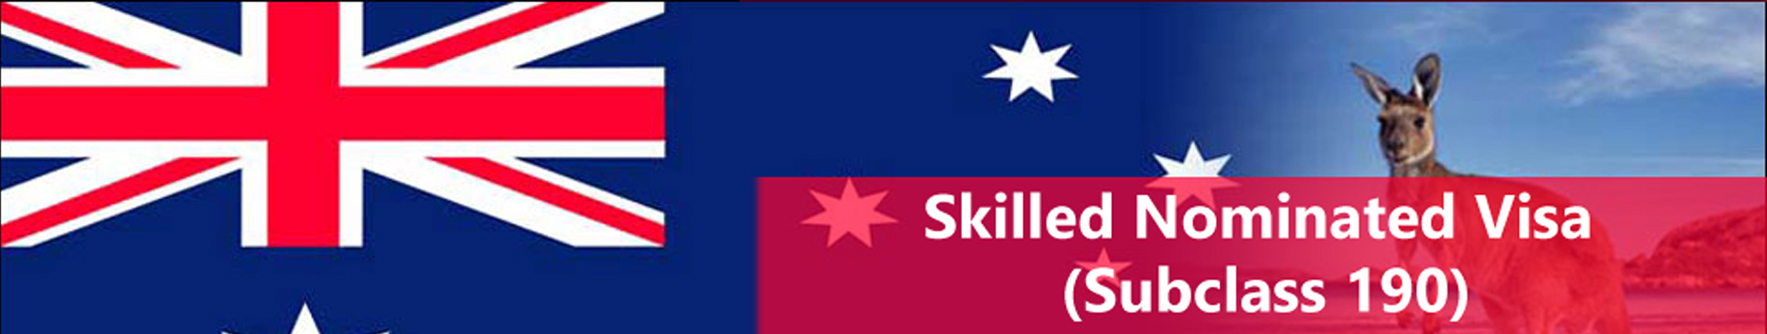 Australia Skilled Nominated Visa (Subclass 190)